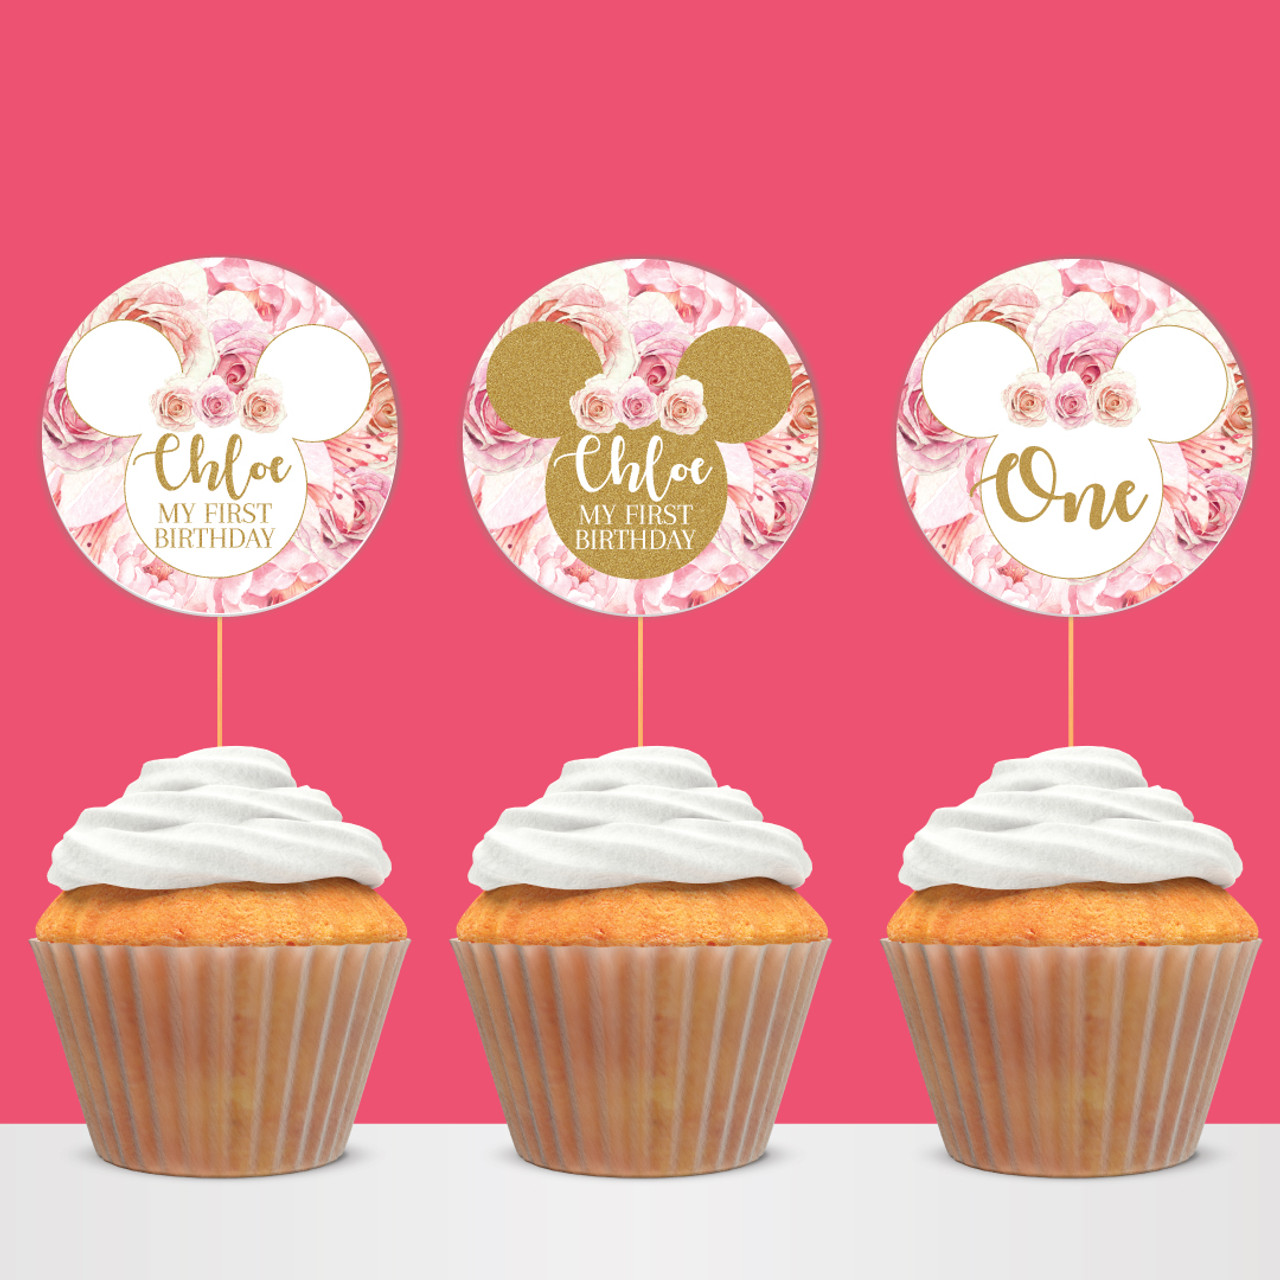 Swell Digital Minnie Mouse Floral Pink Flowers Birthday Cupcake Toppers Funny Birthday Cards Online Necthendildamsfinfo